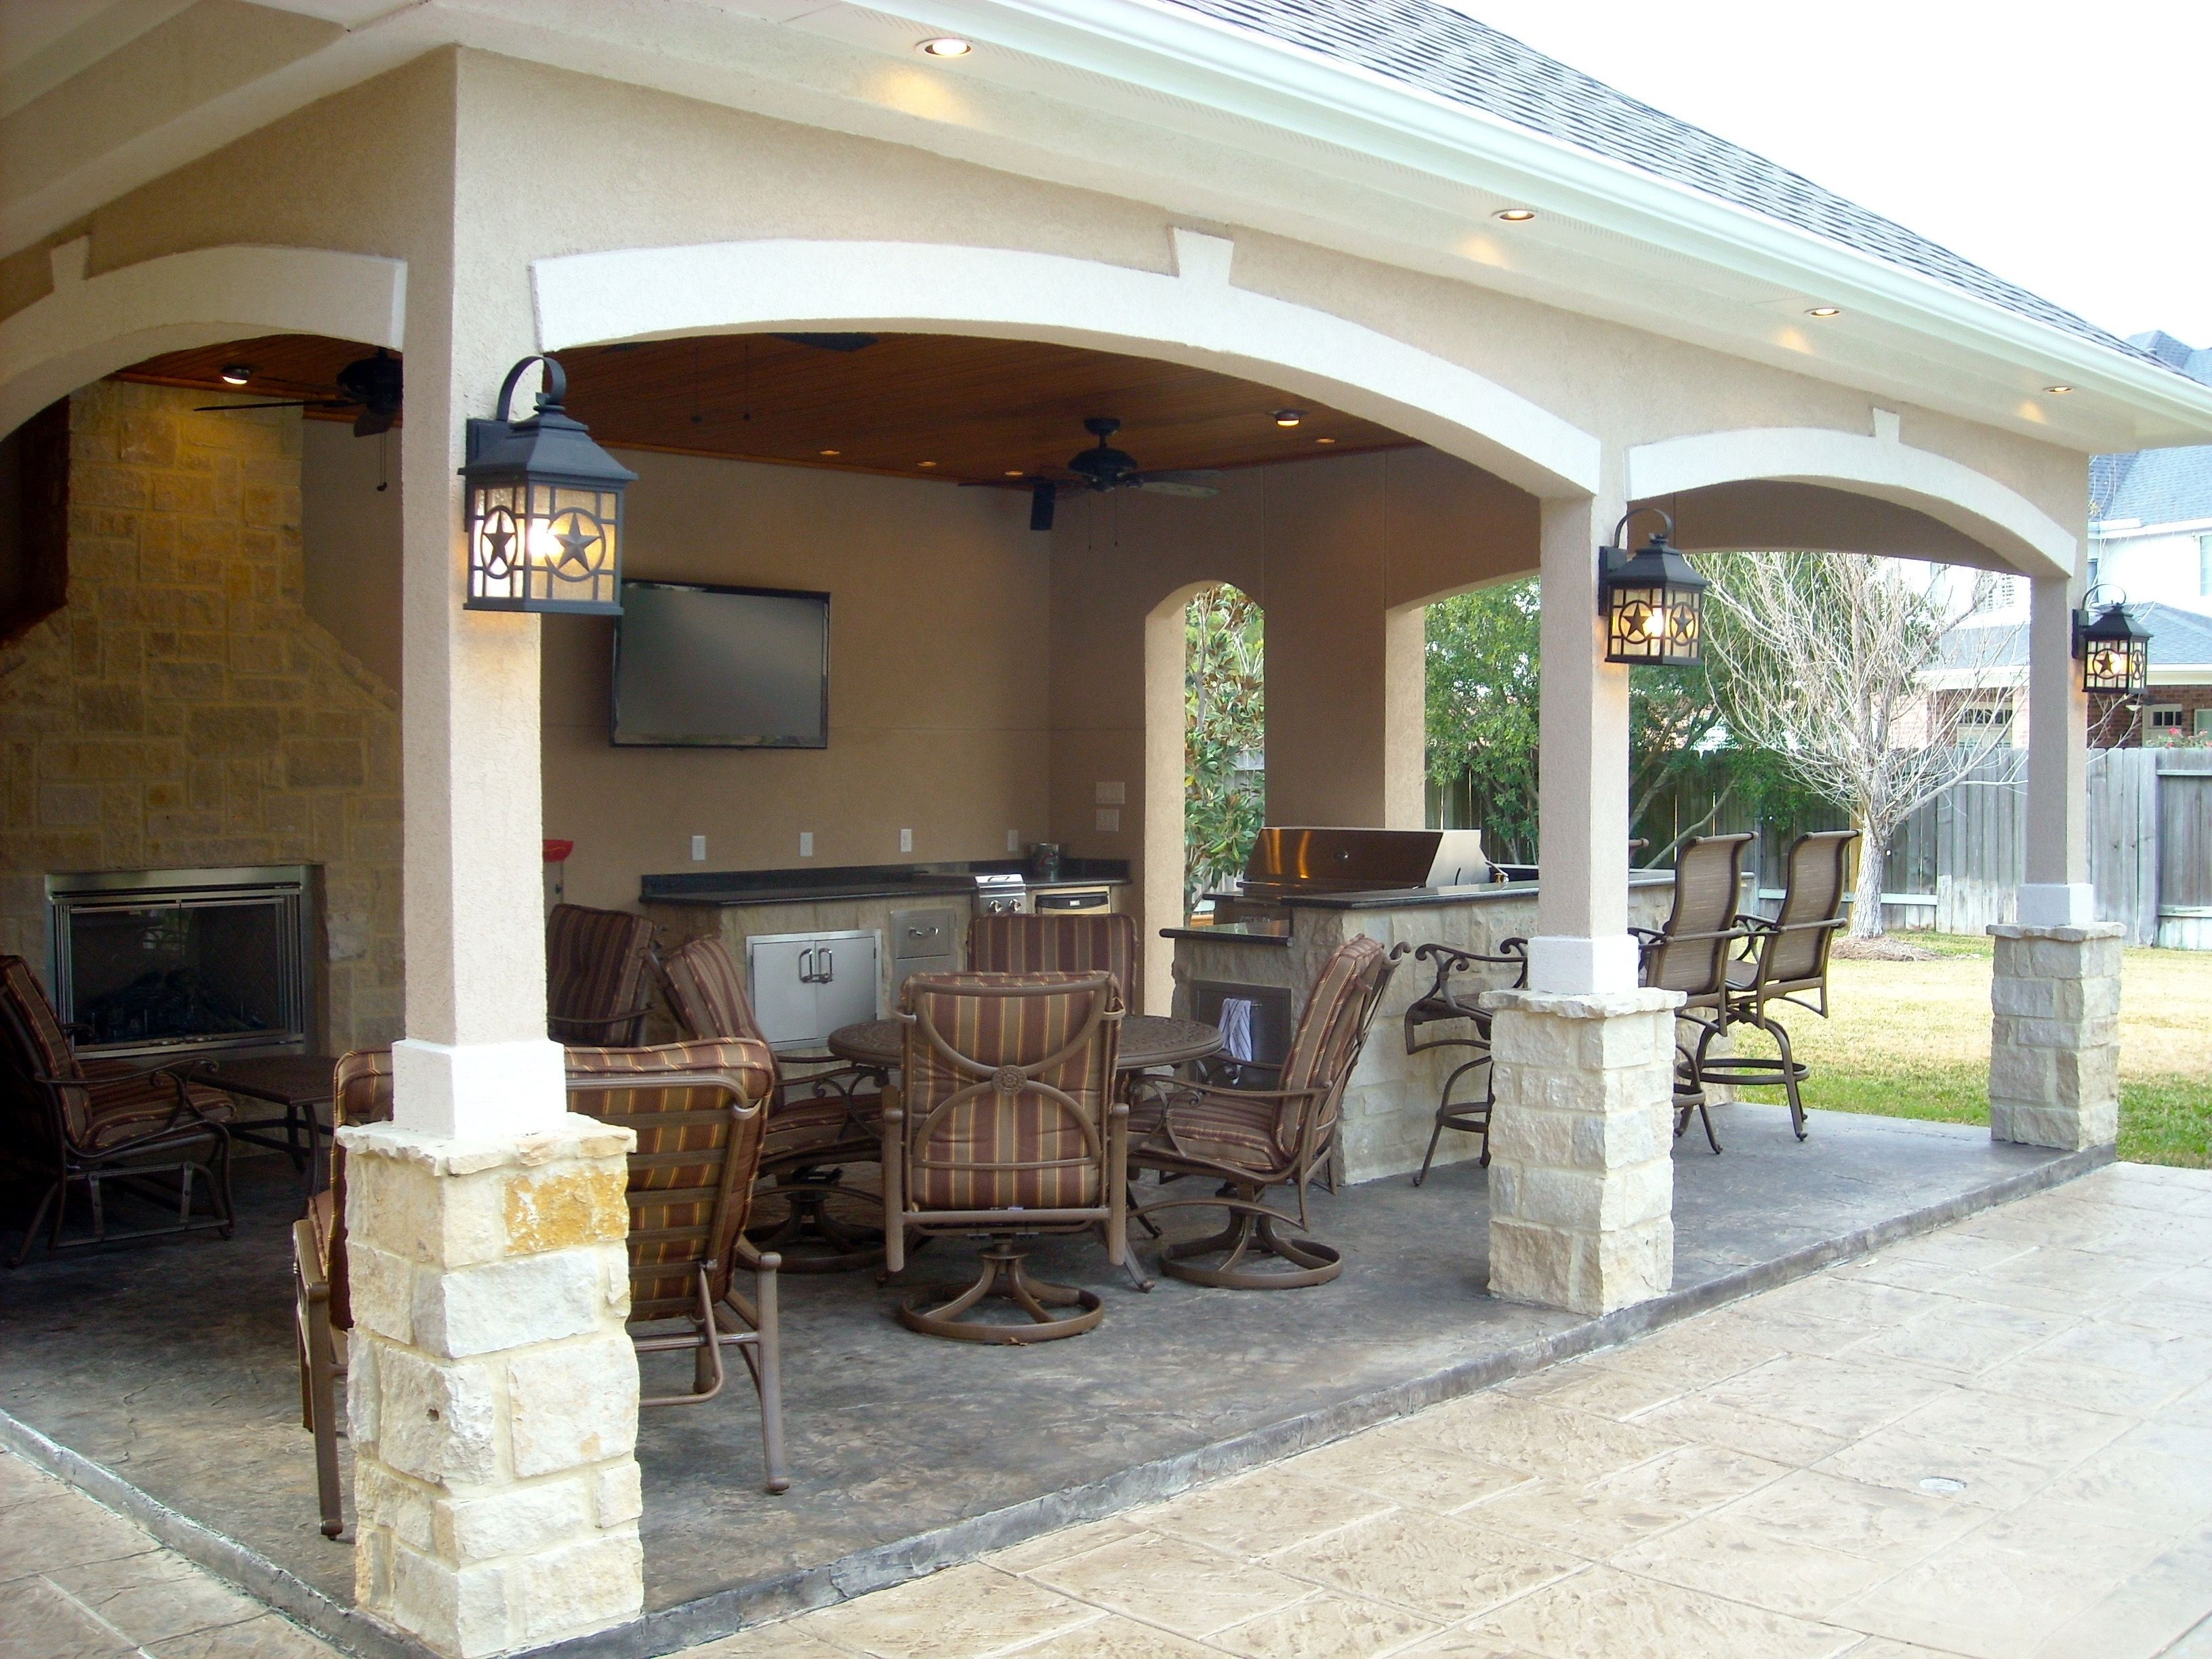 Free Standing Patio Cover Kitchen And Bathroom With Stucco And Stone Accents Patio Design Outdoor Remodel Outdoor Kitchen Design Layout